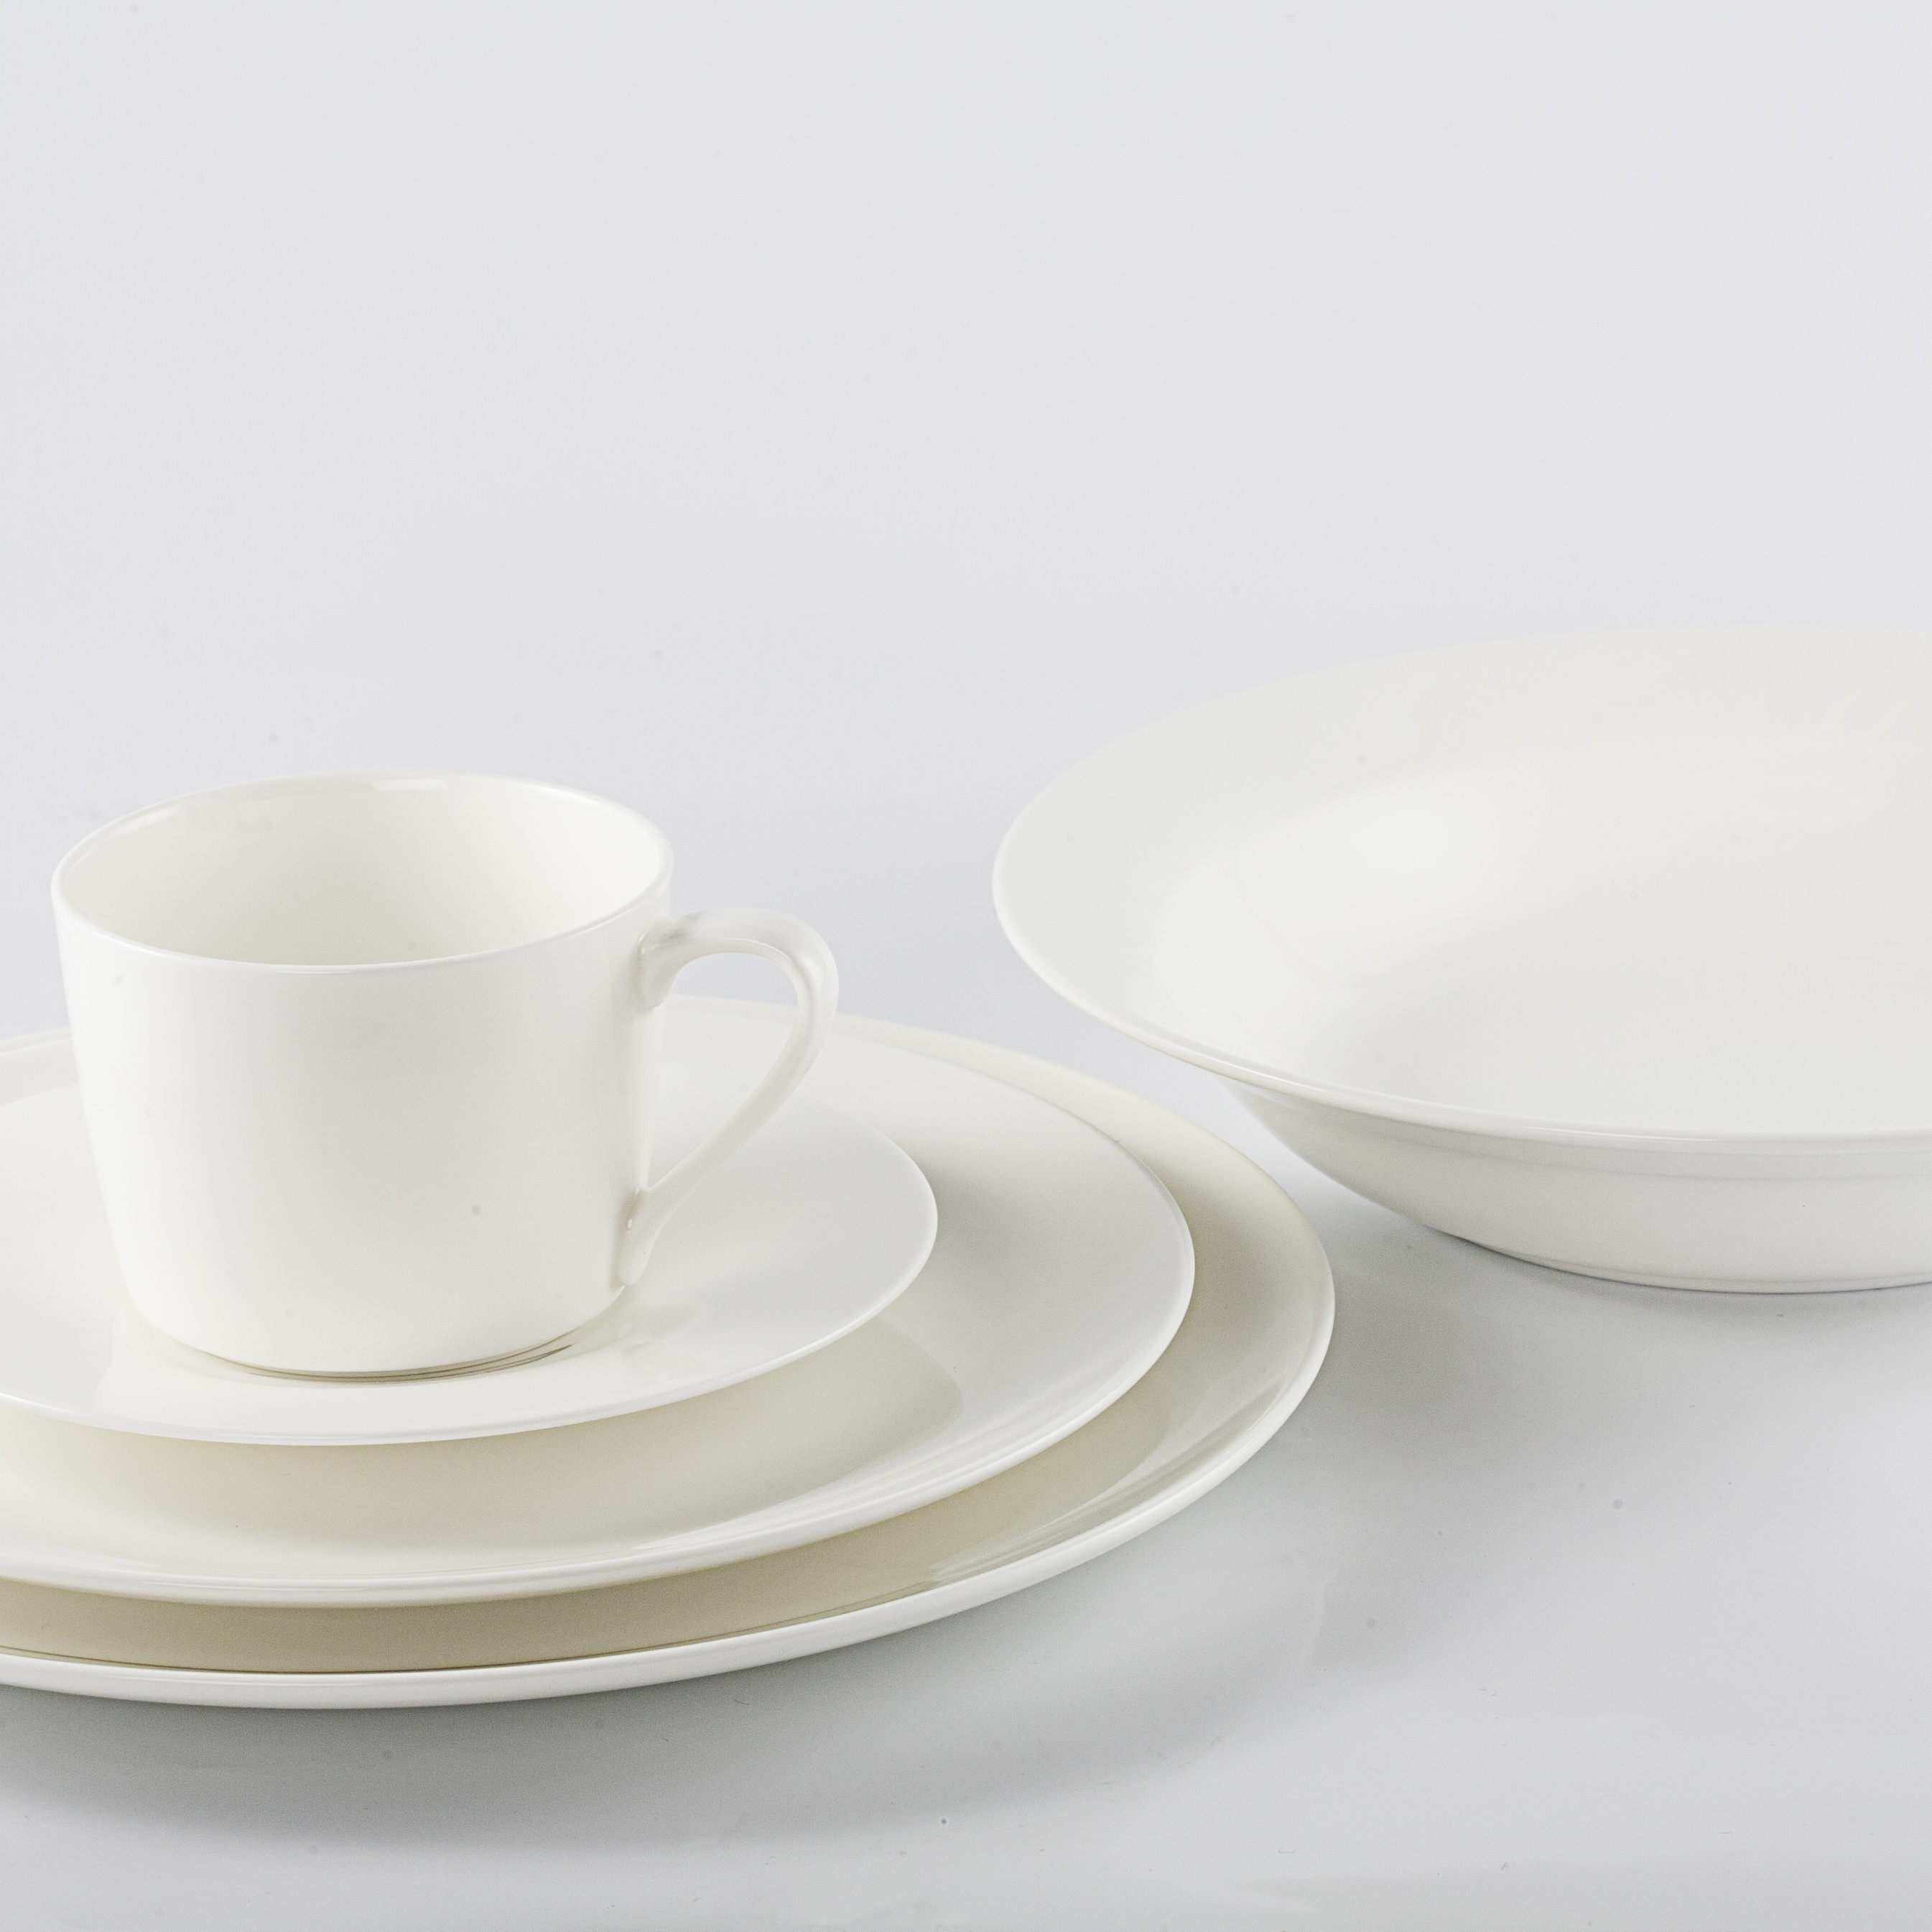 4 Piece Place Setting - Continental Soup Bowl